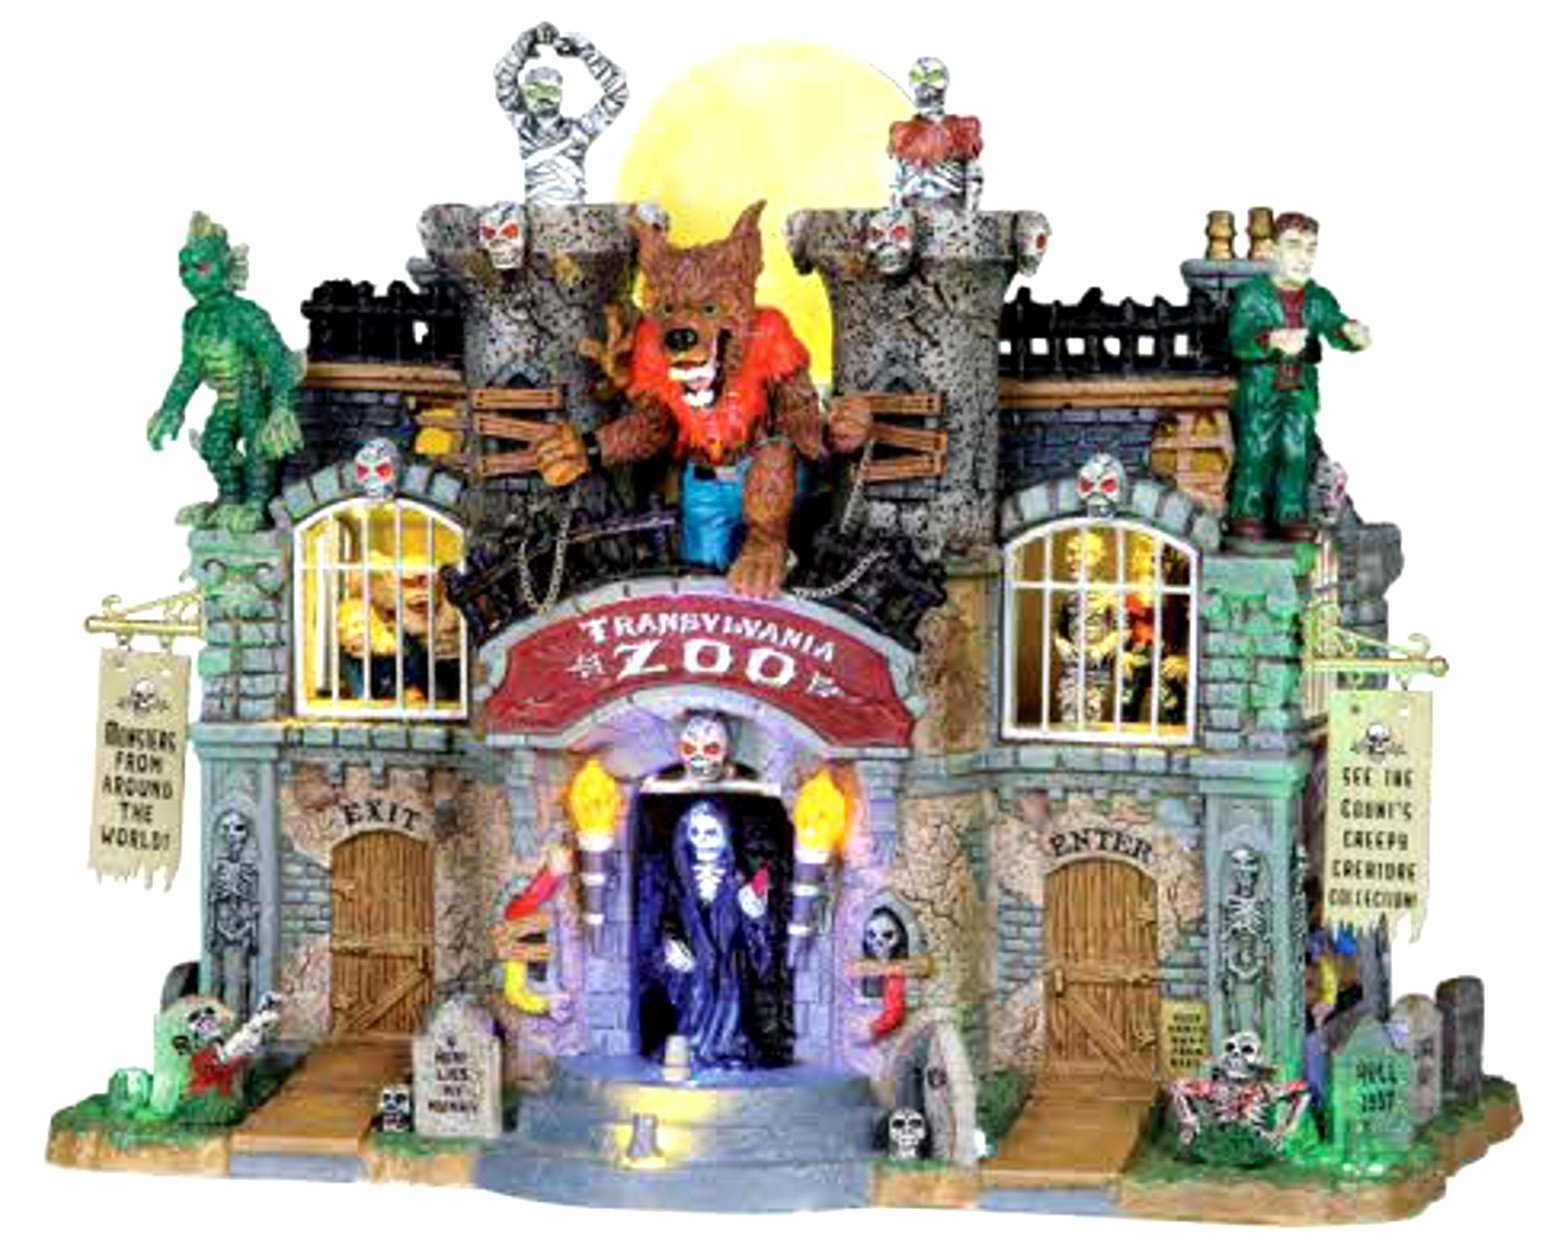 Lemax Spooky Town Transylvania Zoo Animated Musical Lighted Building